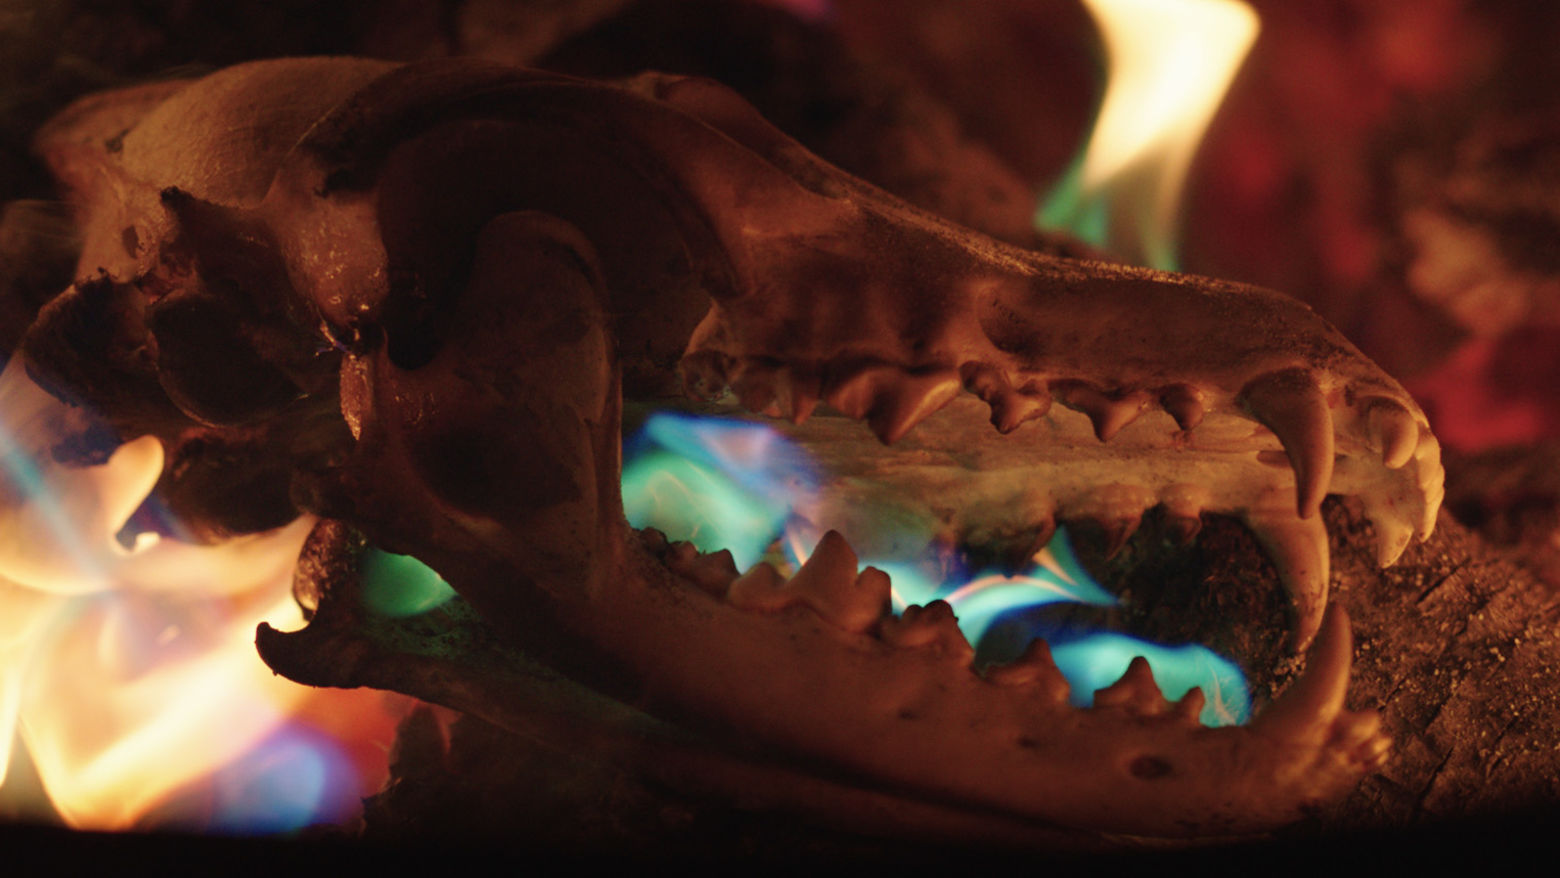 A side view of an animal's skull among colorful flames